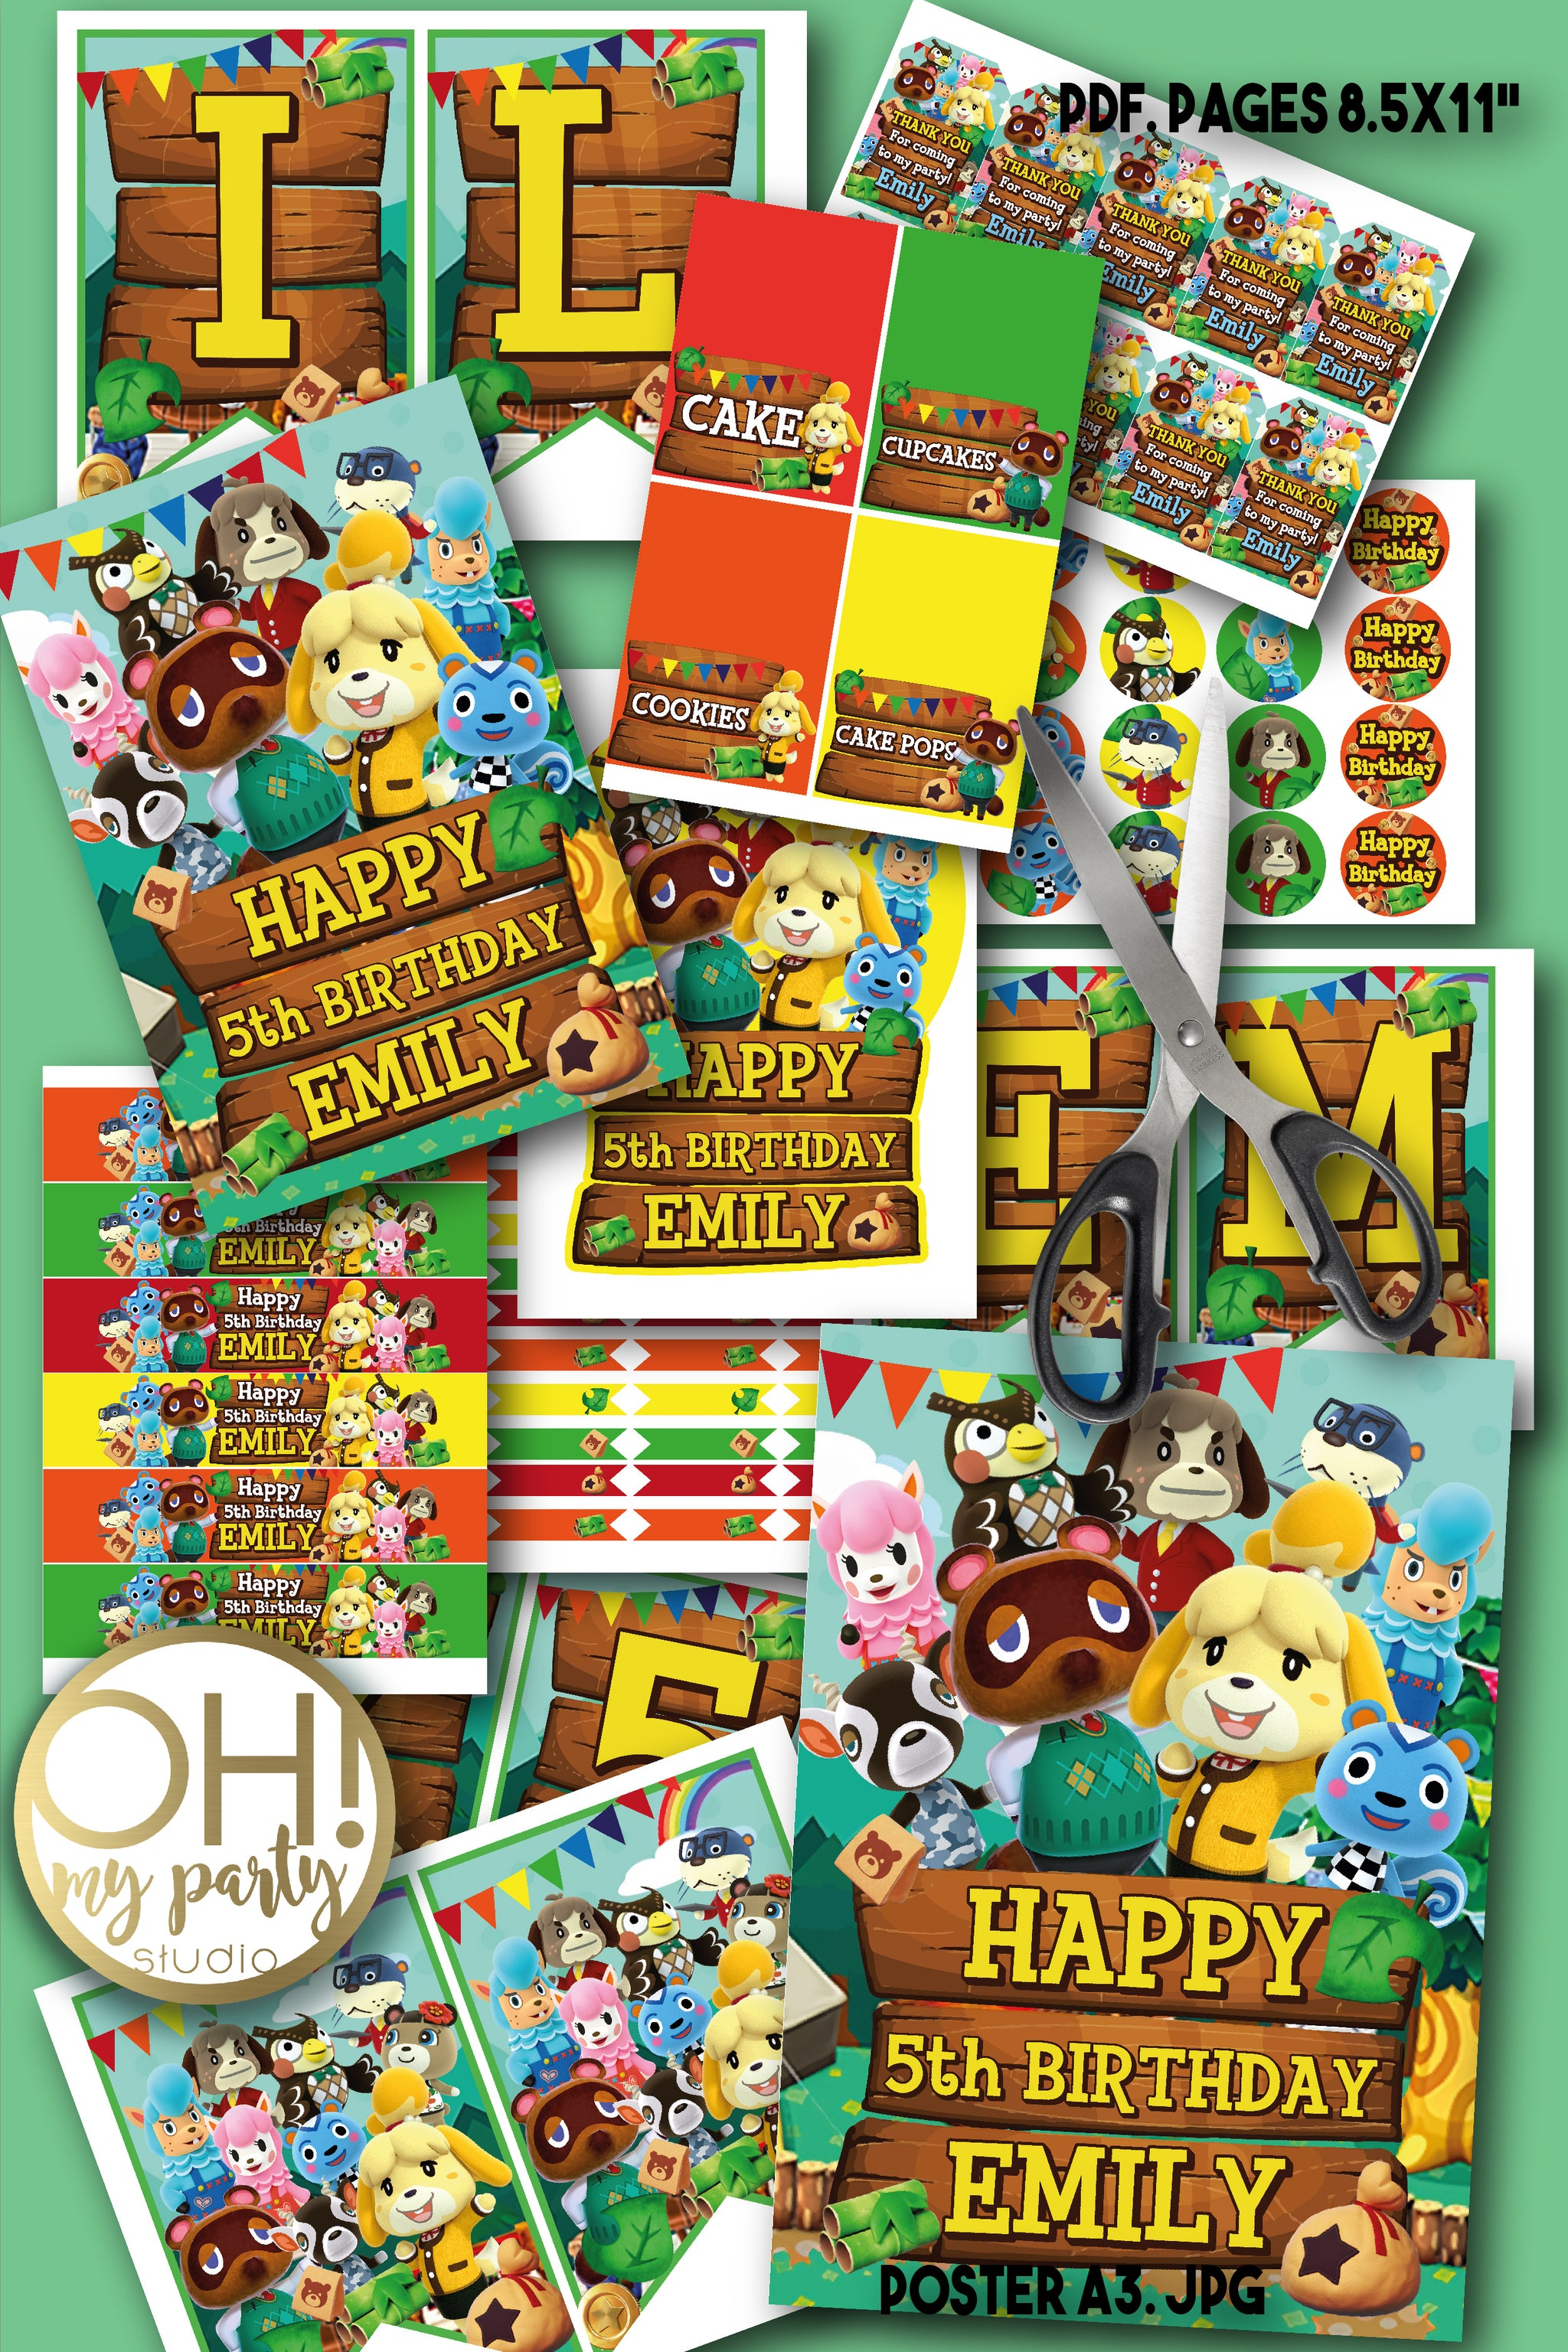 ANIMAL CROSSING PARTY SUPPLIES, ANIMAL CROSSING PARTY DECORATIONS, ANIMAL CROSSING PARTY IDEAS, ANIMAL CROSSING PARTY PRINTABLES, ANIMAL CROSSING CAKE, ANIMAL CROSSING CUPCAKE, ANIMAL CROSSING BANNER, ANIMAL CROSSING SING, ANIMAL CROSSING PARTY, ANIMAL CROSSING BIRTHDAY, ANIMAL CROSSING THANK YOU TAGS, ANIMAL CROSSING DECORATIONS, ANIMAL CROSSING FIESTA, ANIMAL CROSSING IMPRIBIBLES